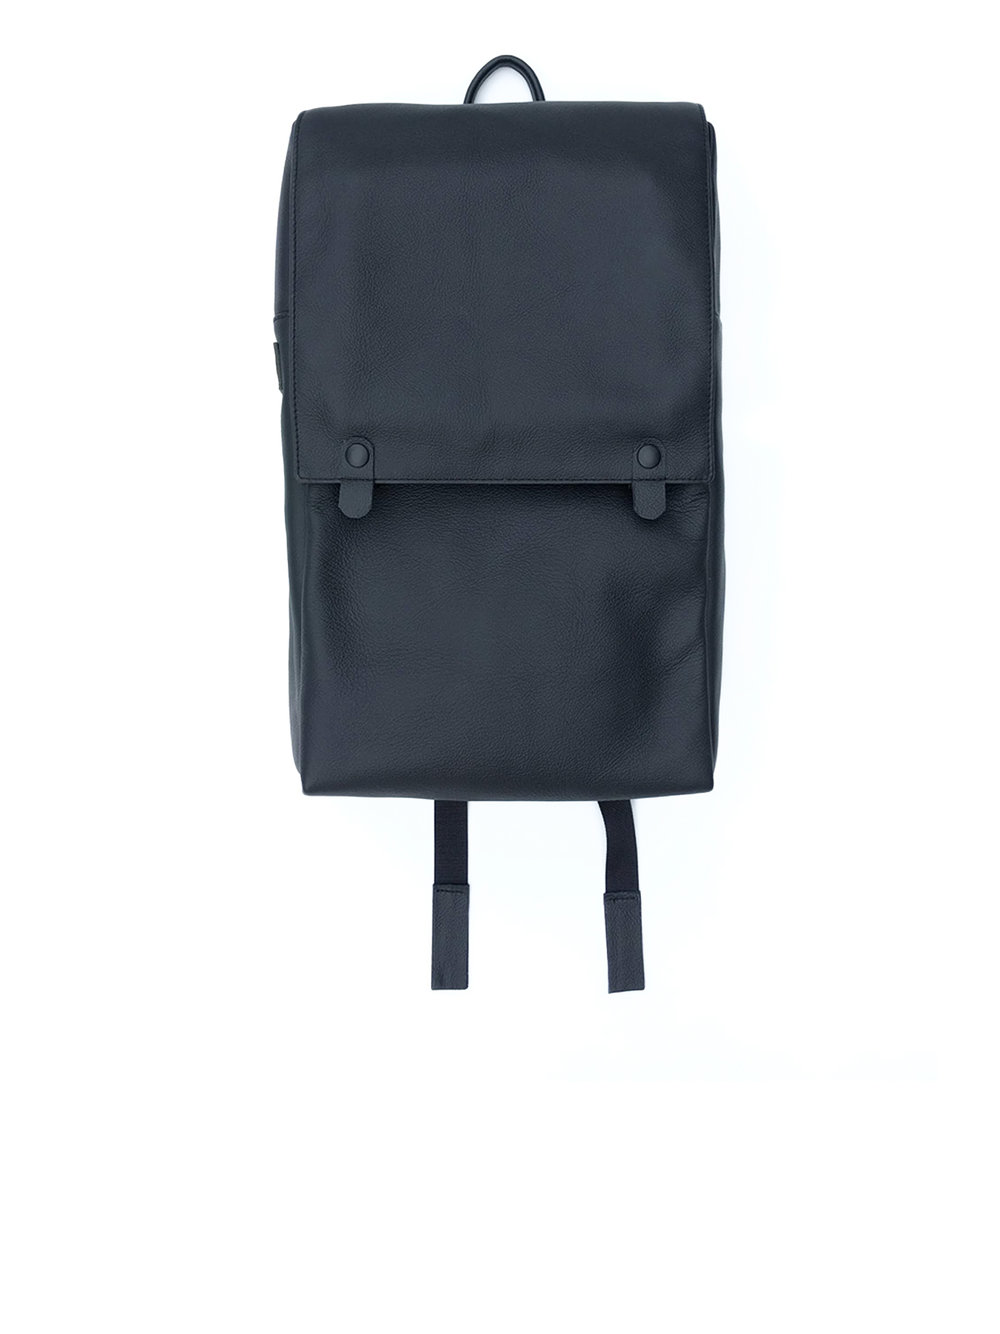 Minimalist backpack - more colors available280.00$